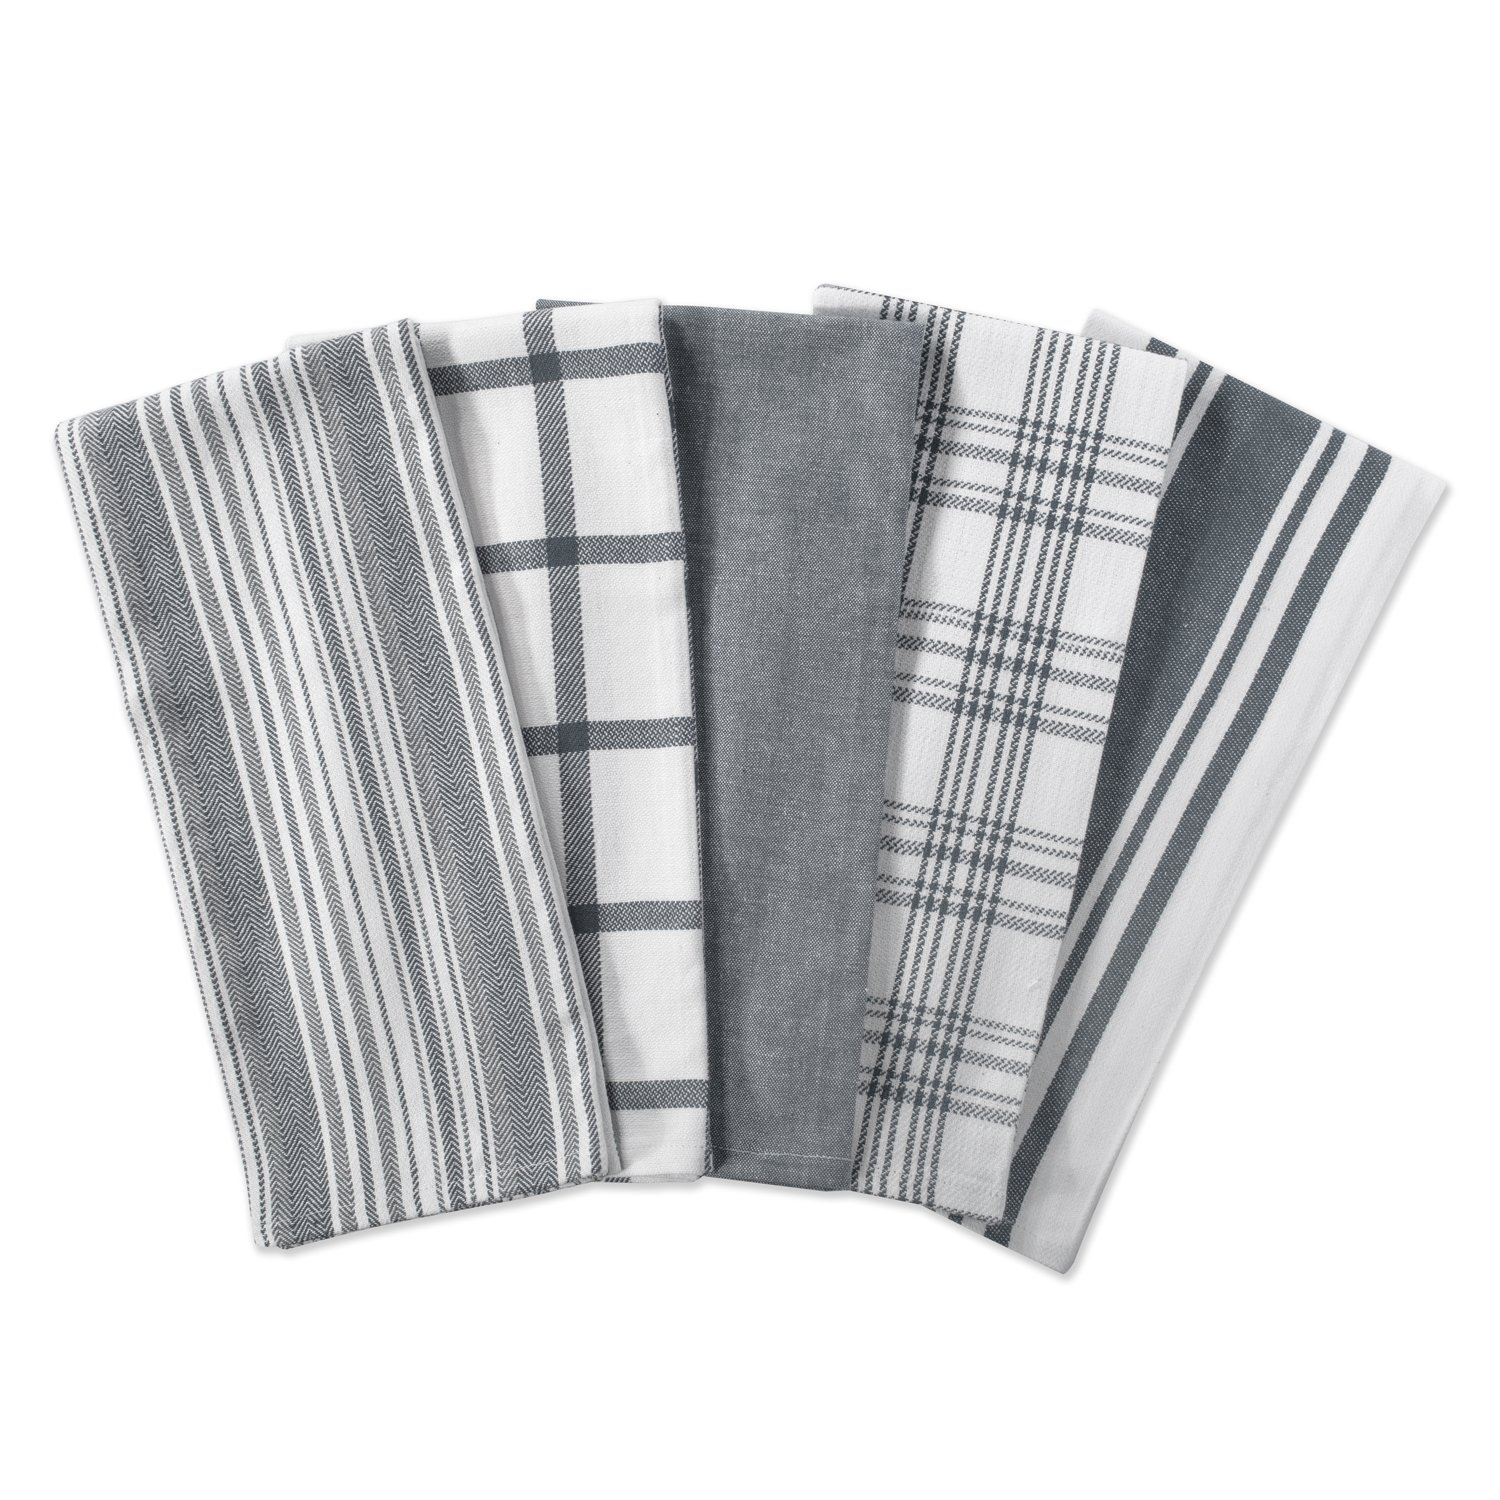 DII Kitchen Dish Towels (Gray, 18x28''), Ultra Absorbent & Fast Drying, Professional Grade Cotton Tea Towels for Everyday Cooking and Baking -  Assorted Patterns, Set of 5